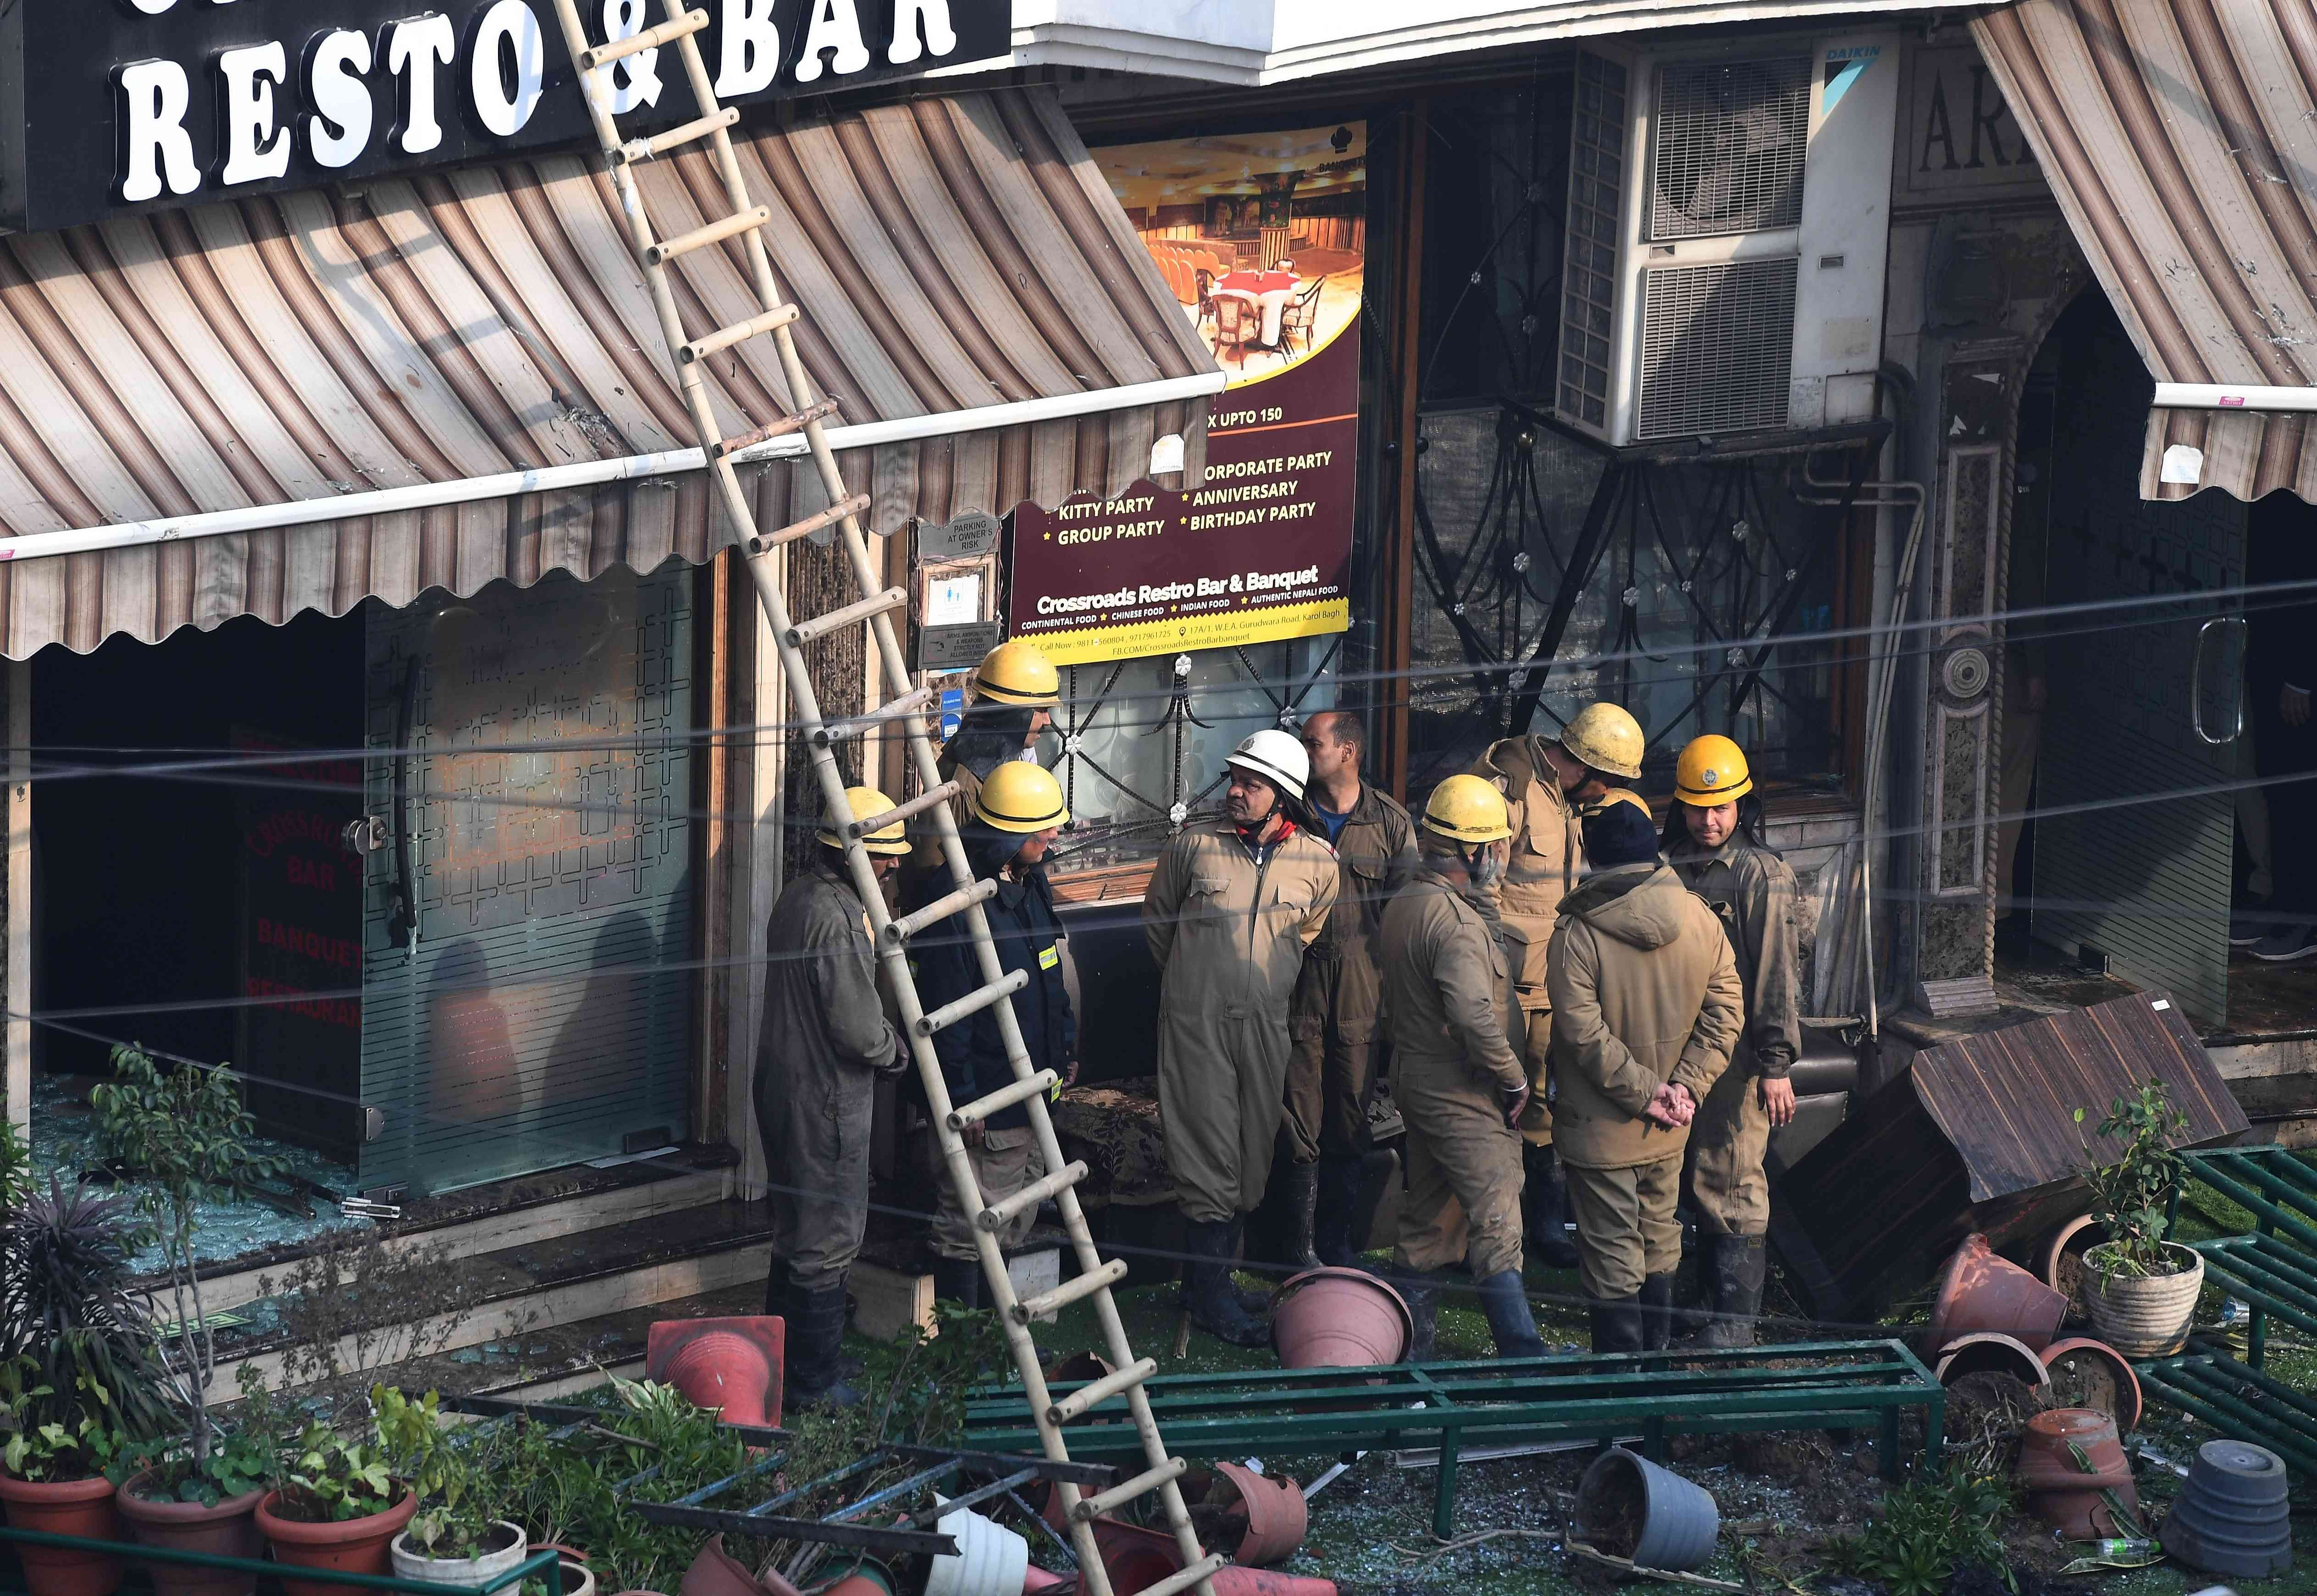 Delhi Fire Services and Delhi police personnel stand outside Hotel Arpit Palace after the fire was extinguished. (Photo credit: AFP)